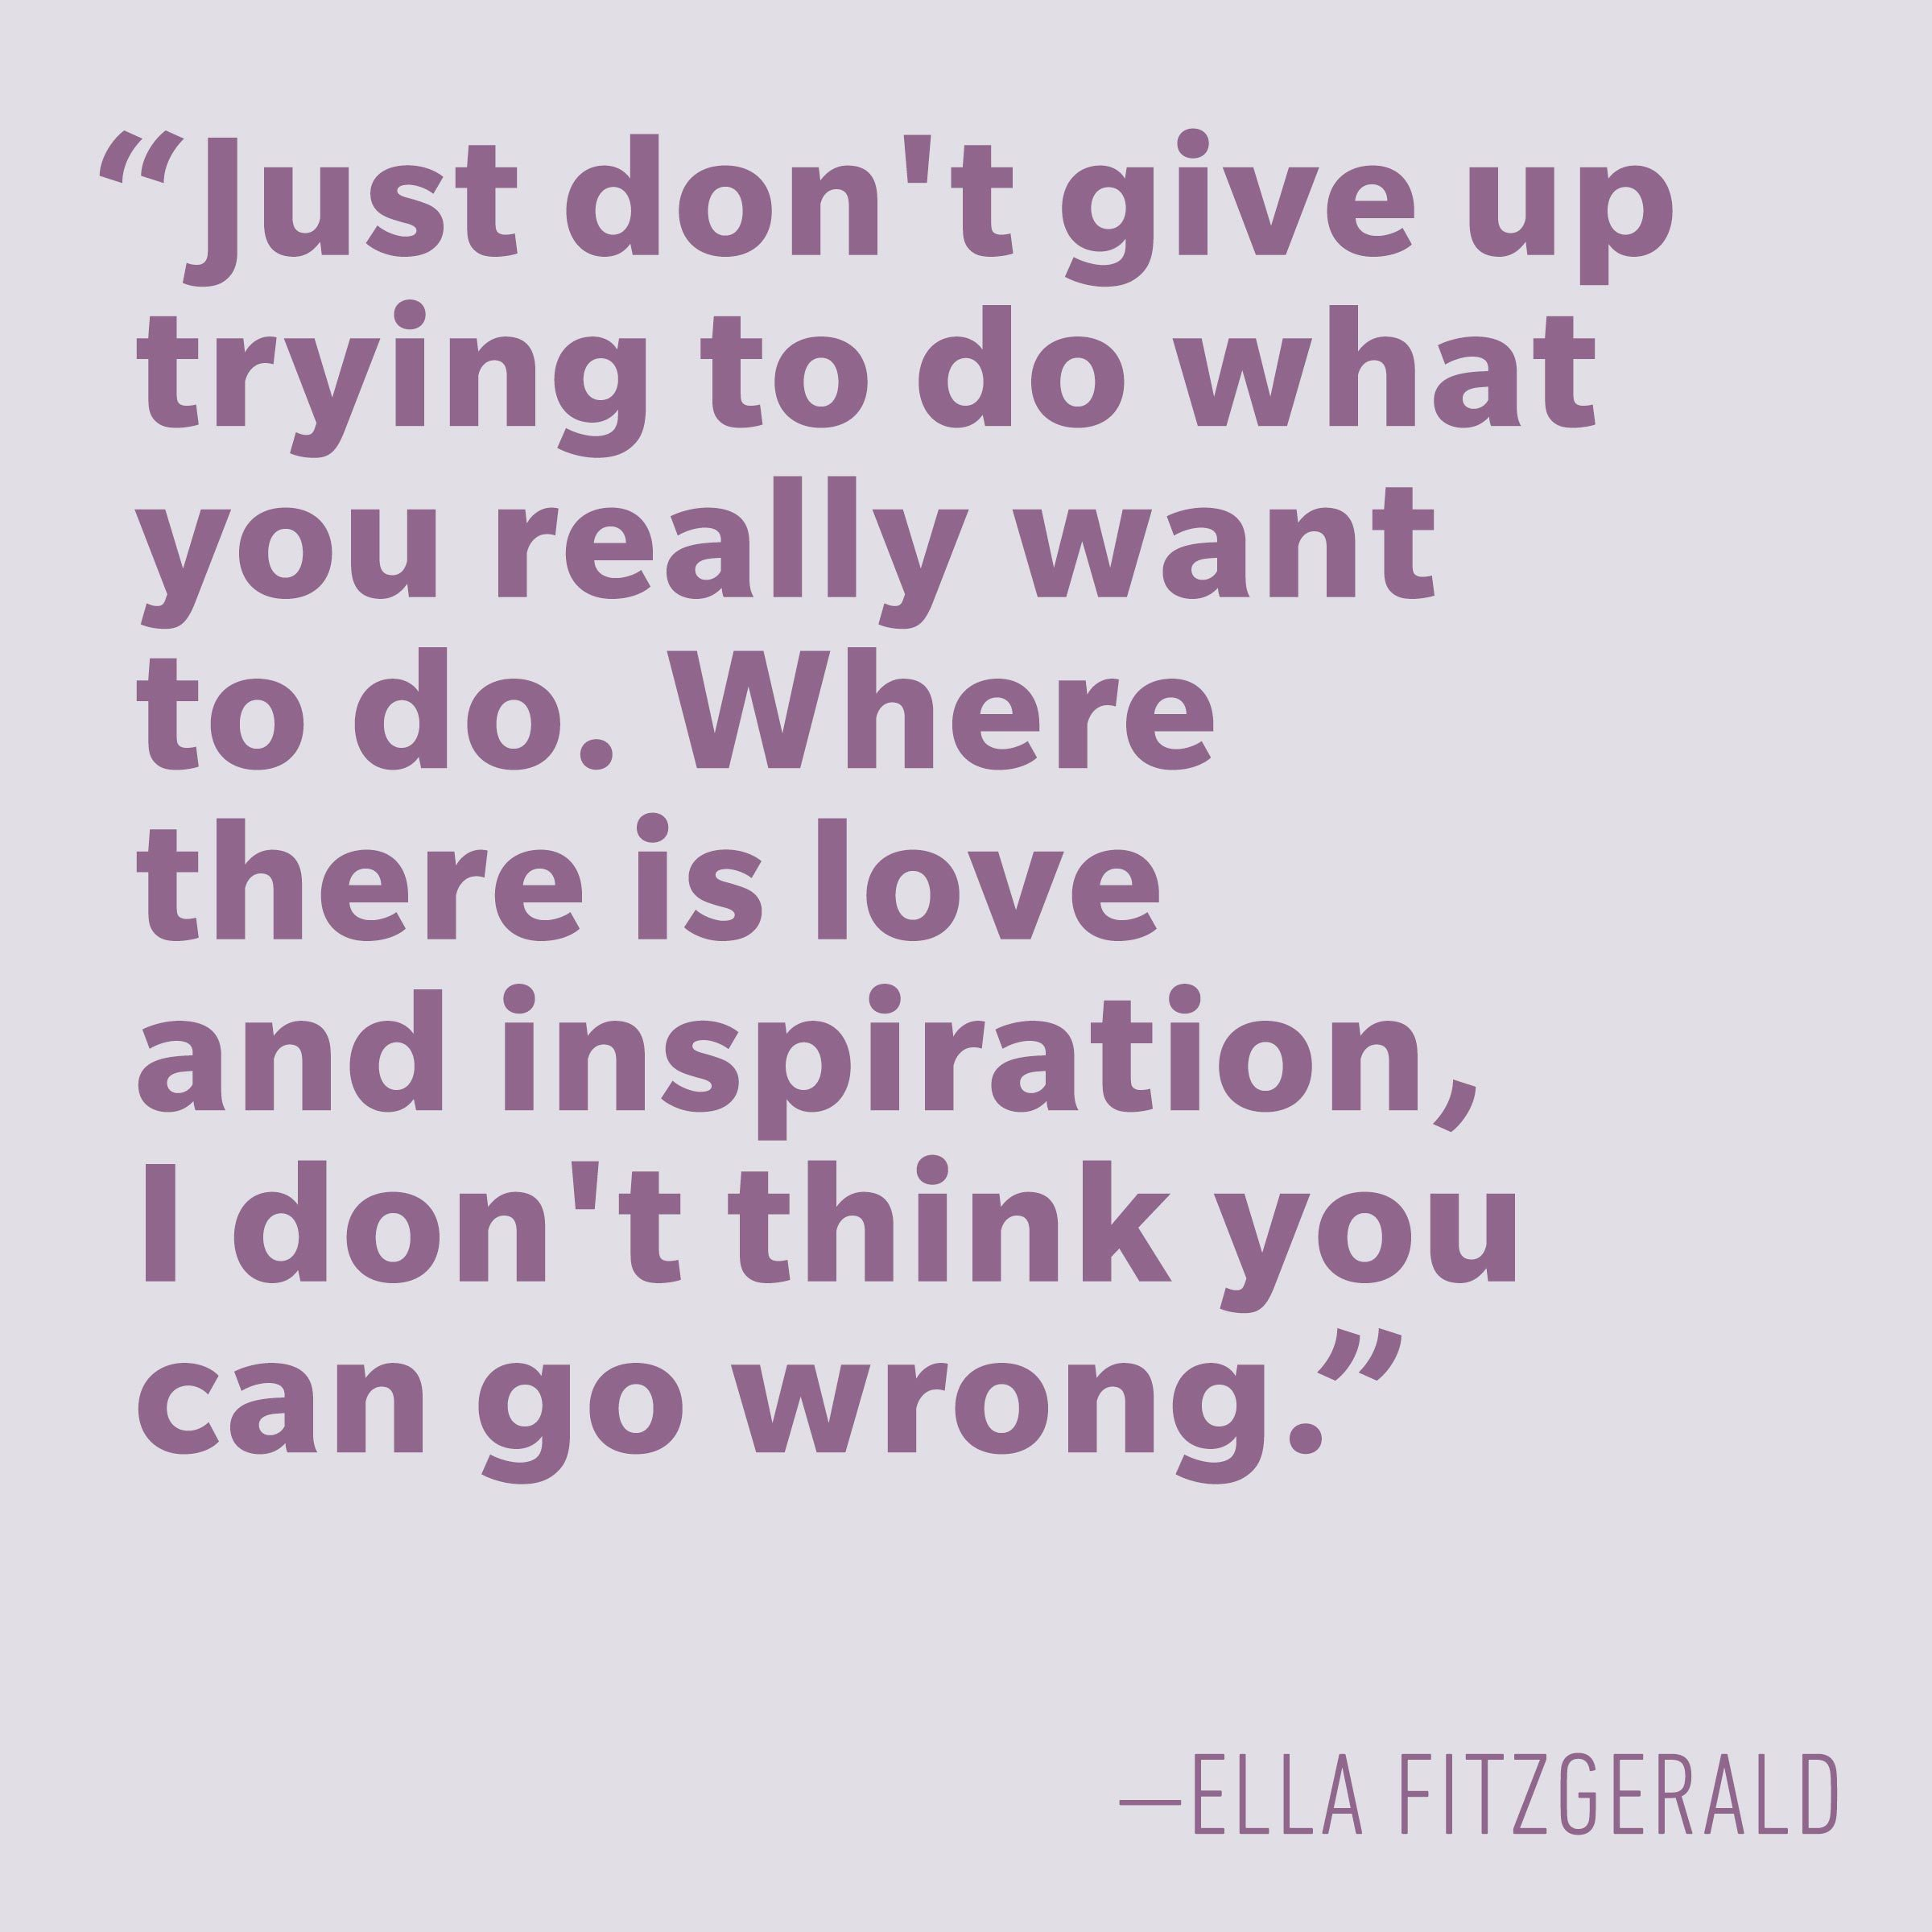 Motivational quotes - Ella Fitzgerald